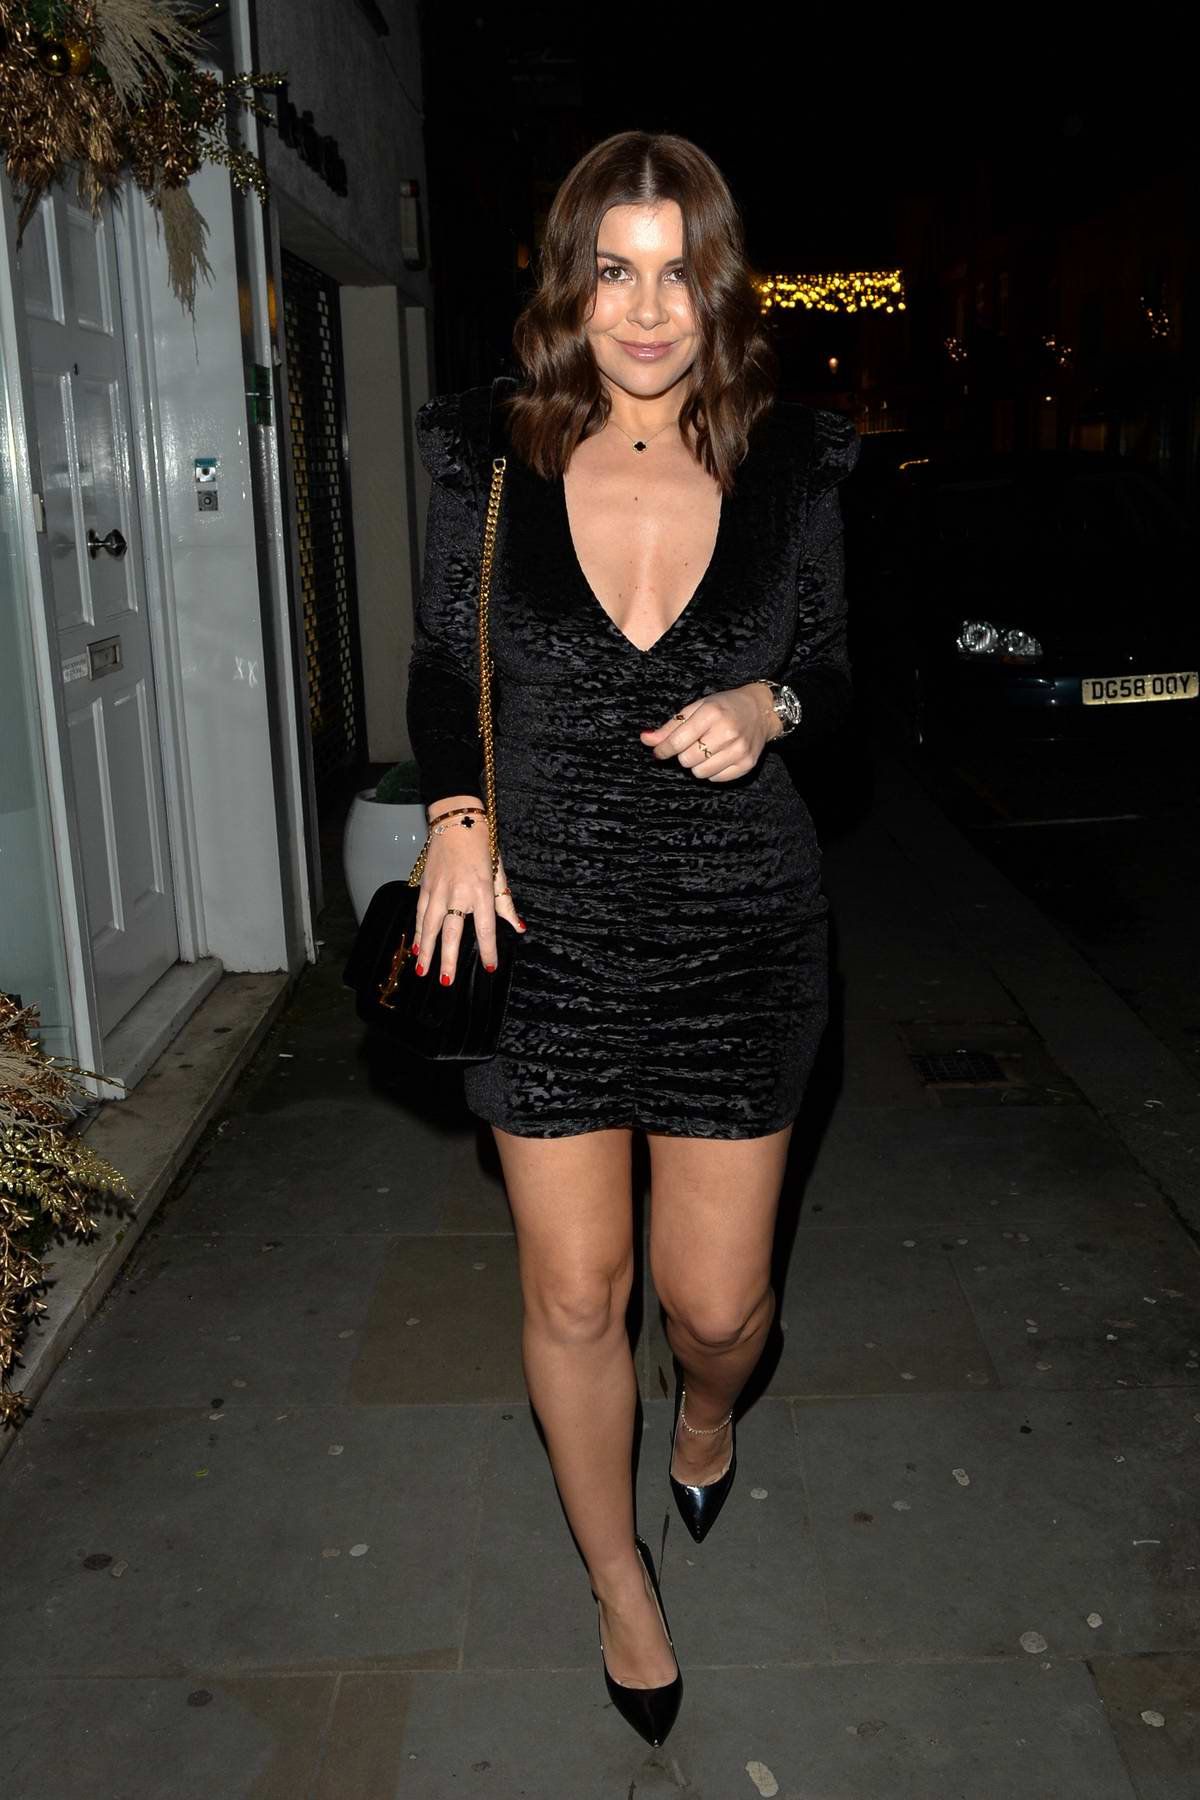 Imogen Thomas celebrates her birthday at Jaks bar in Chelsea, London, UK